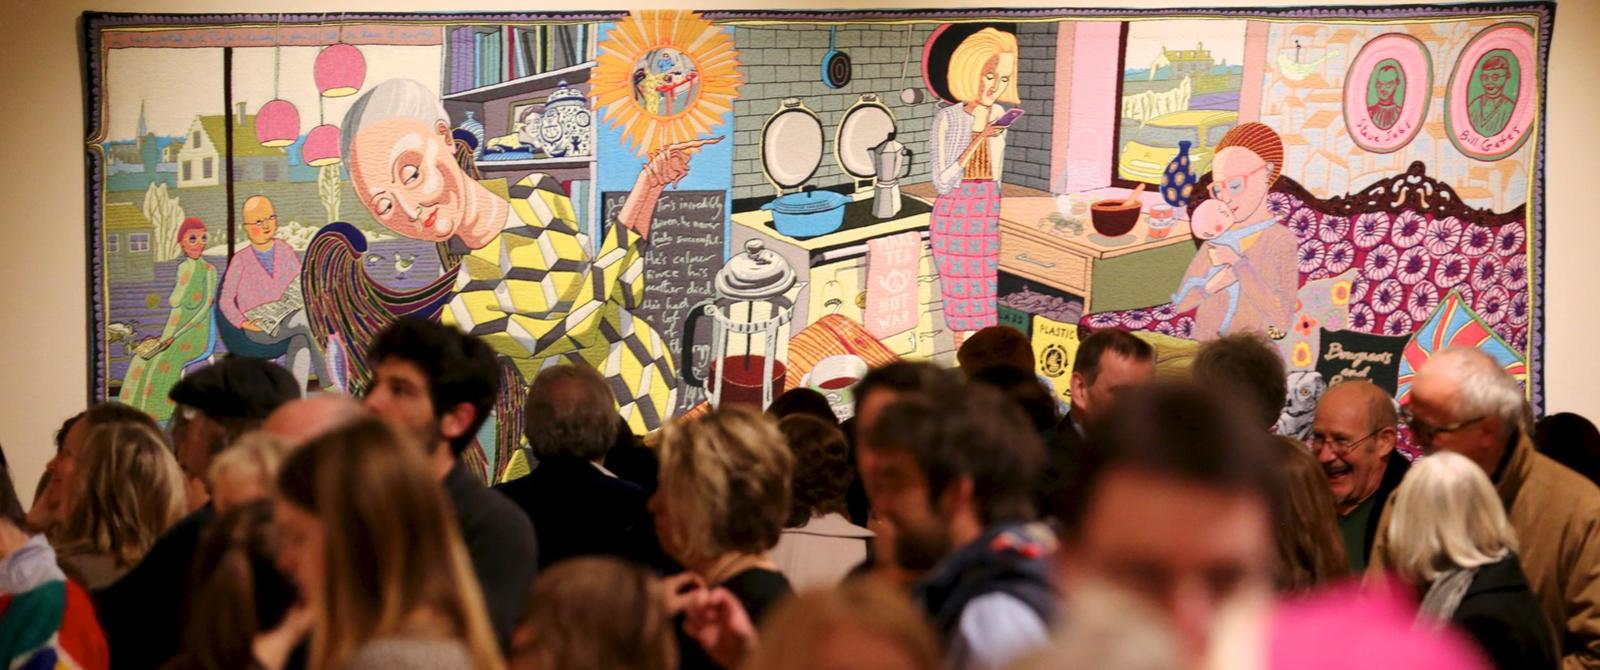 Image: Grayson Perry exhibition at the Victoria Art Gallery